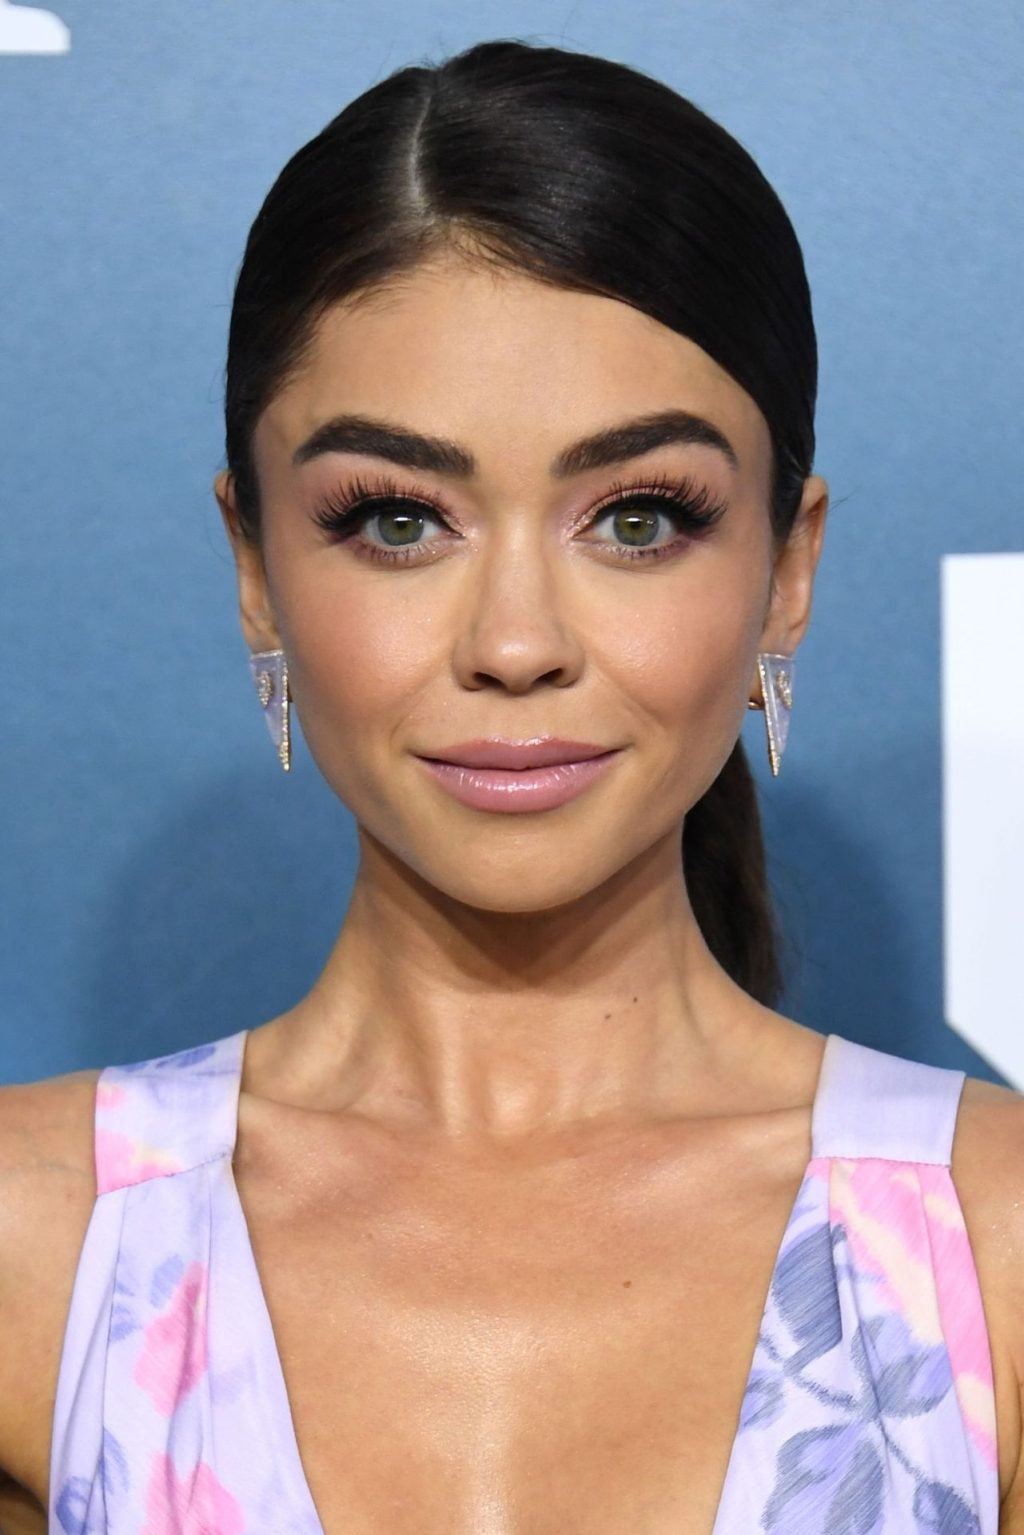 Sarah Hyland Stuns at the Screen Actors Guild Awards (67 Photos + Video)